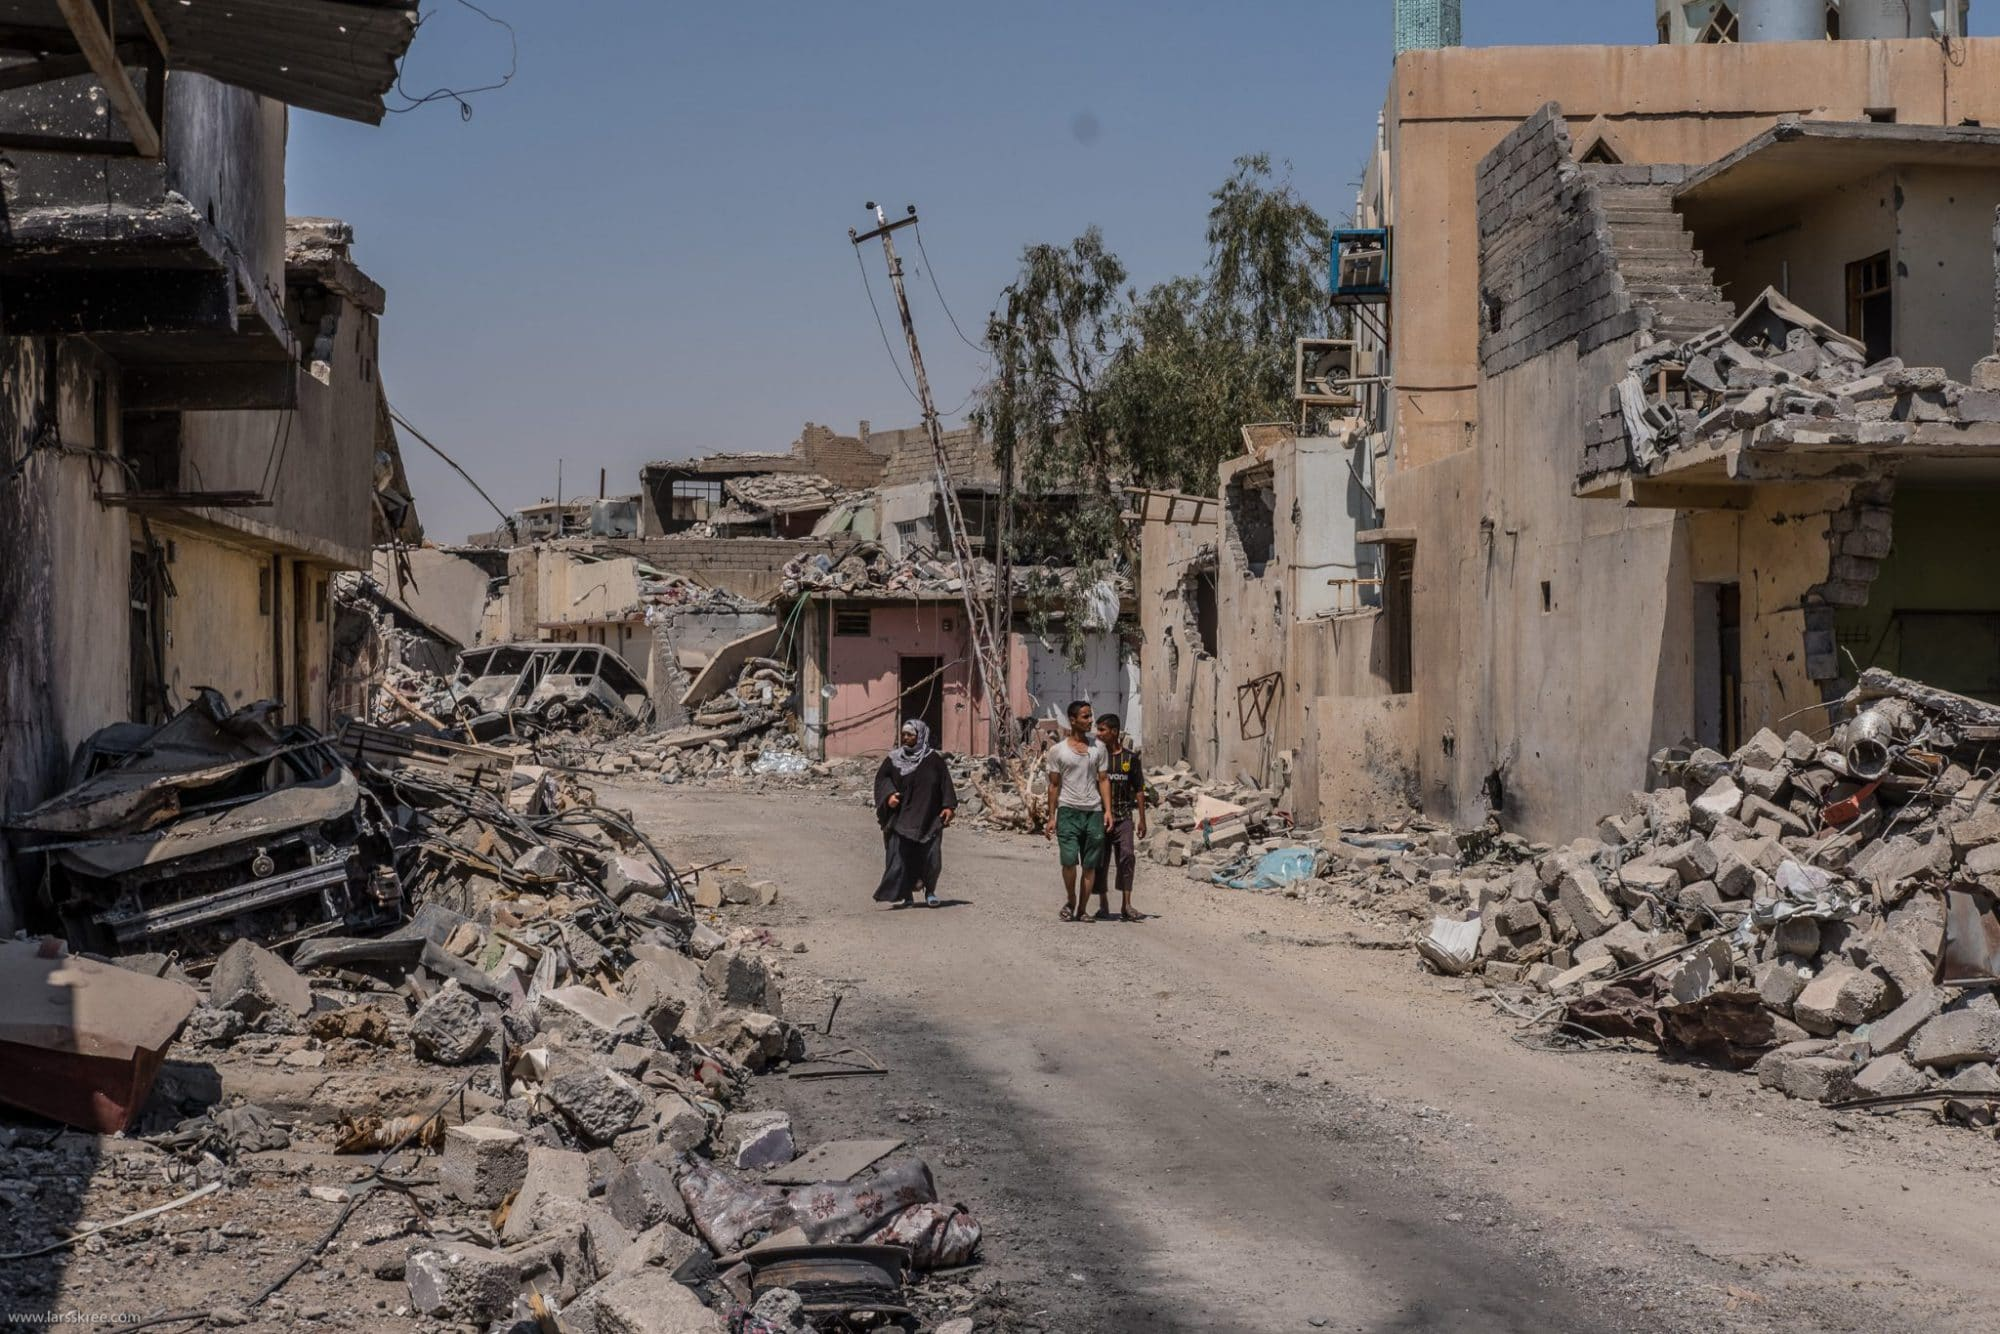 West Mosul just same day it was liberated from ISIS